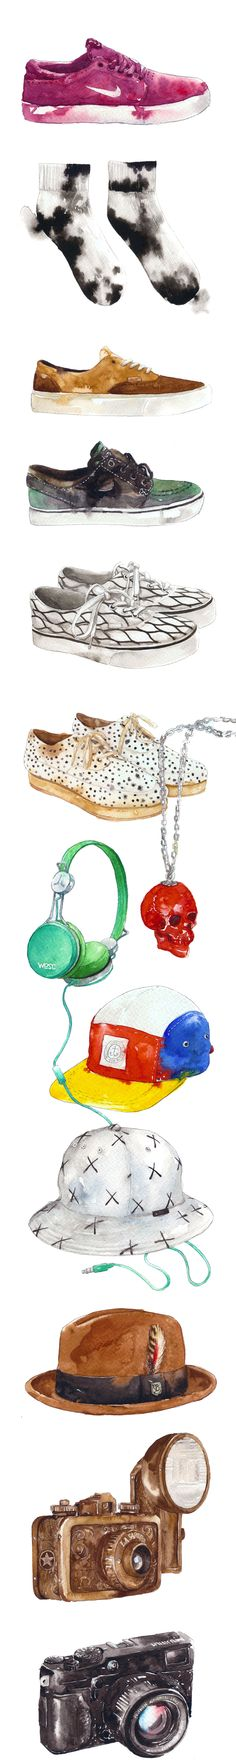 Top to Toe - Product drawings | Bitchslap Magazine on Behance